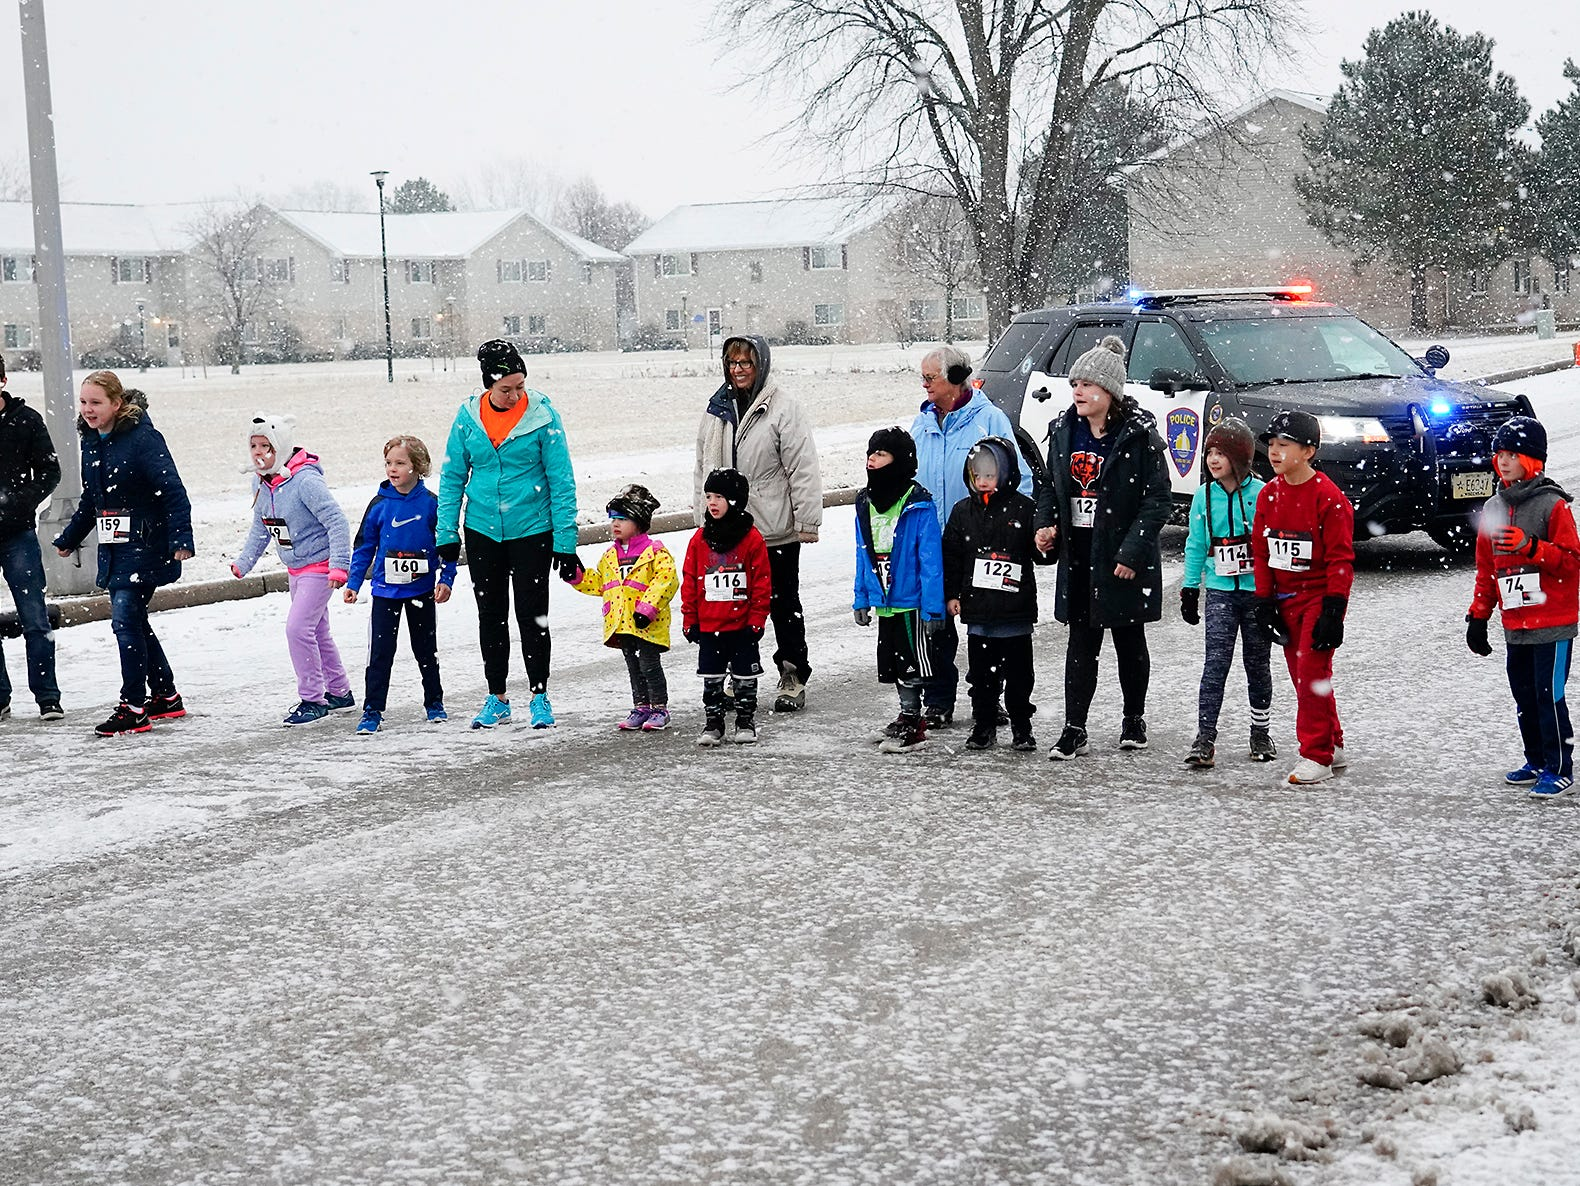 Kids get ready to run in the half mile kids run Monday, December 31, 2018 at Marian College during the Chilly Chili 5k Run/Walk hosted by the Fond du Lac Running Club. Submitted by L.A.PHOTOGRAPHY for USA TODAY NETWORK-Wisconsin